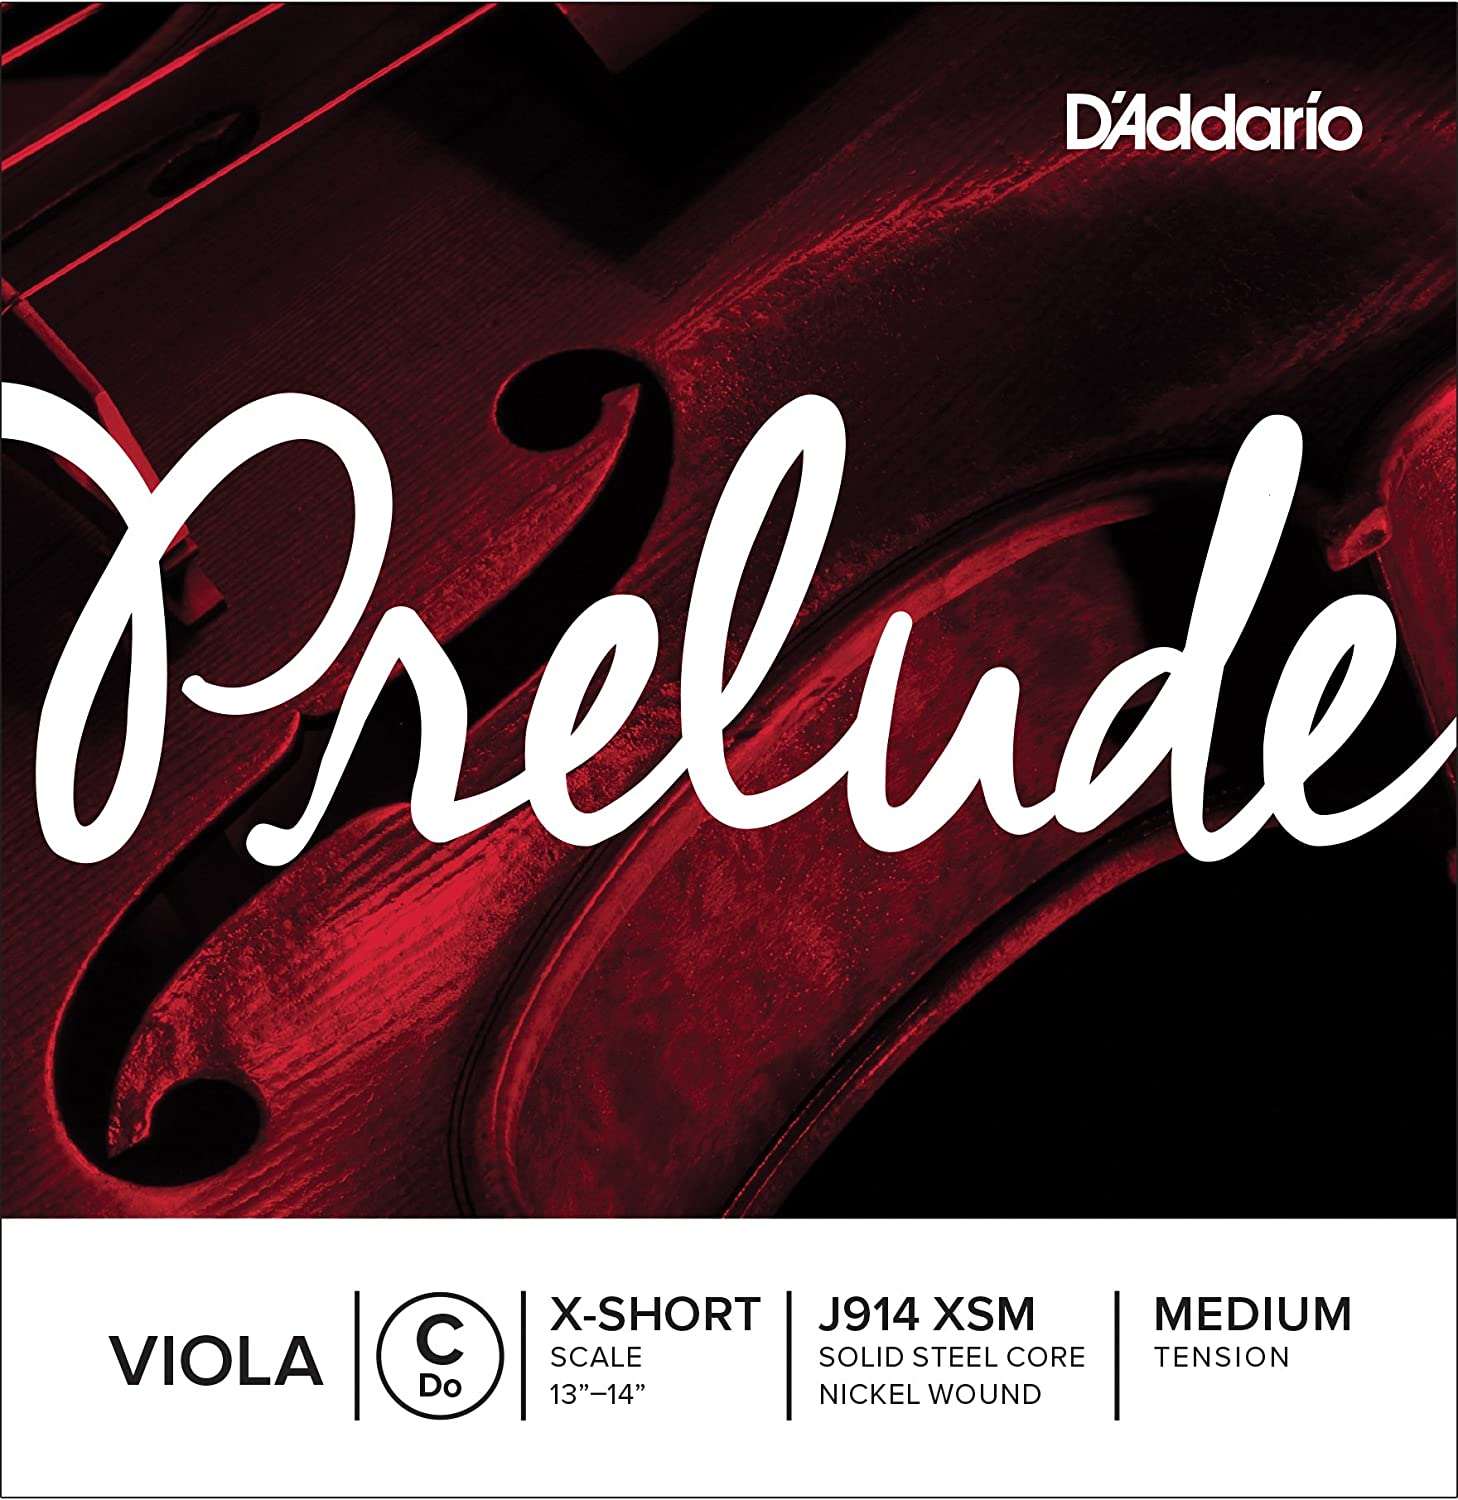 D'Addario Prelude Viola Single C String, Extra Short Scale, Medium Tension D' Addario J914 XSM